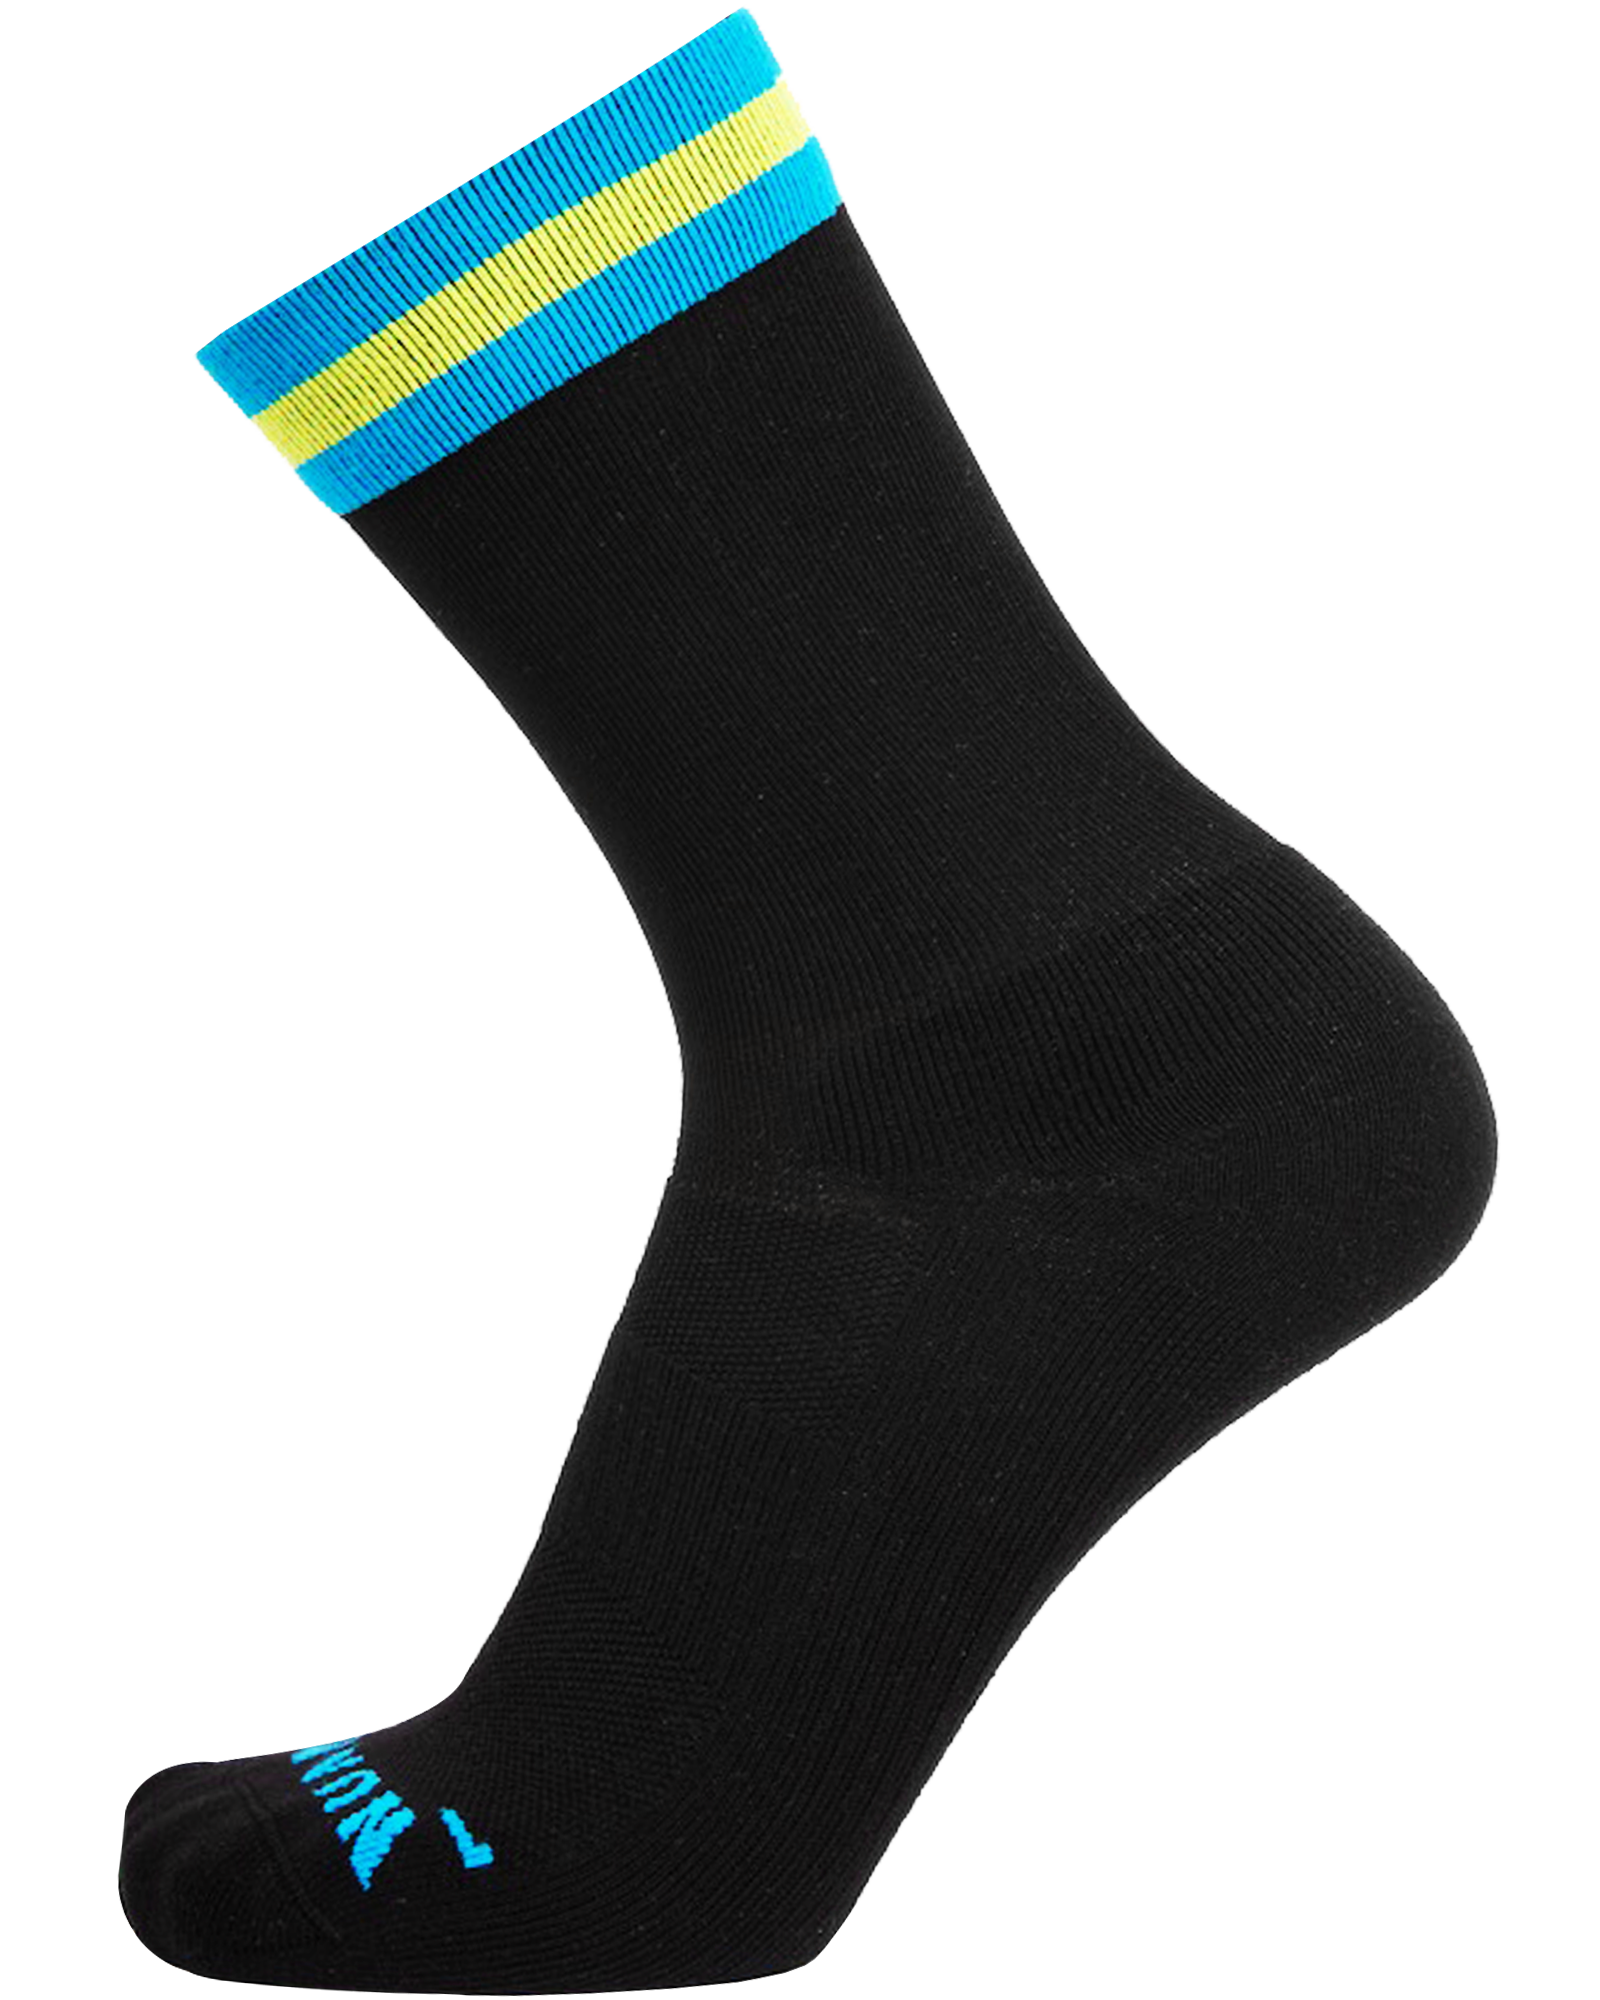 Canyon Neuron Socks | Strømper